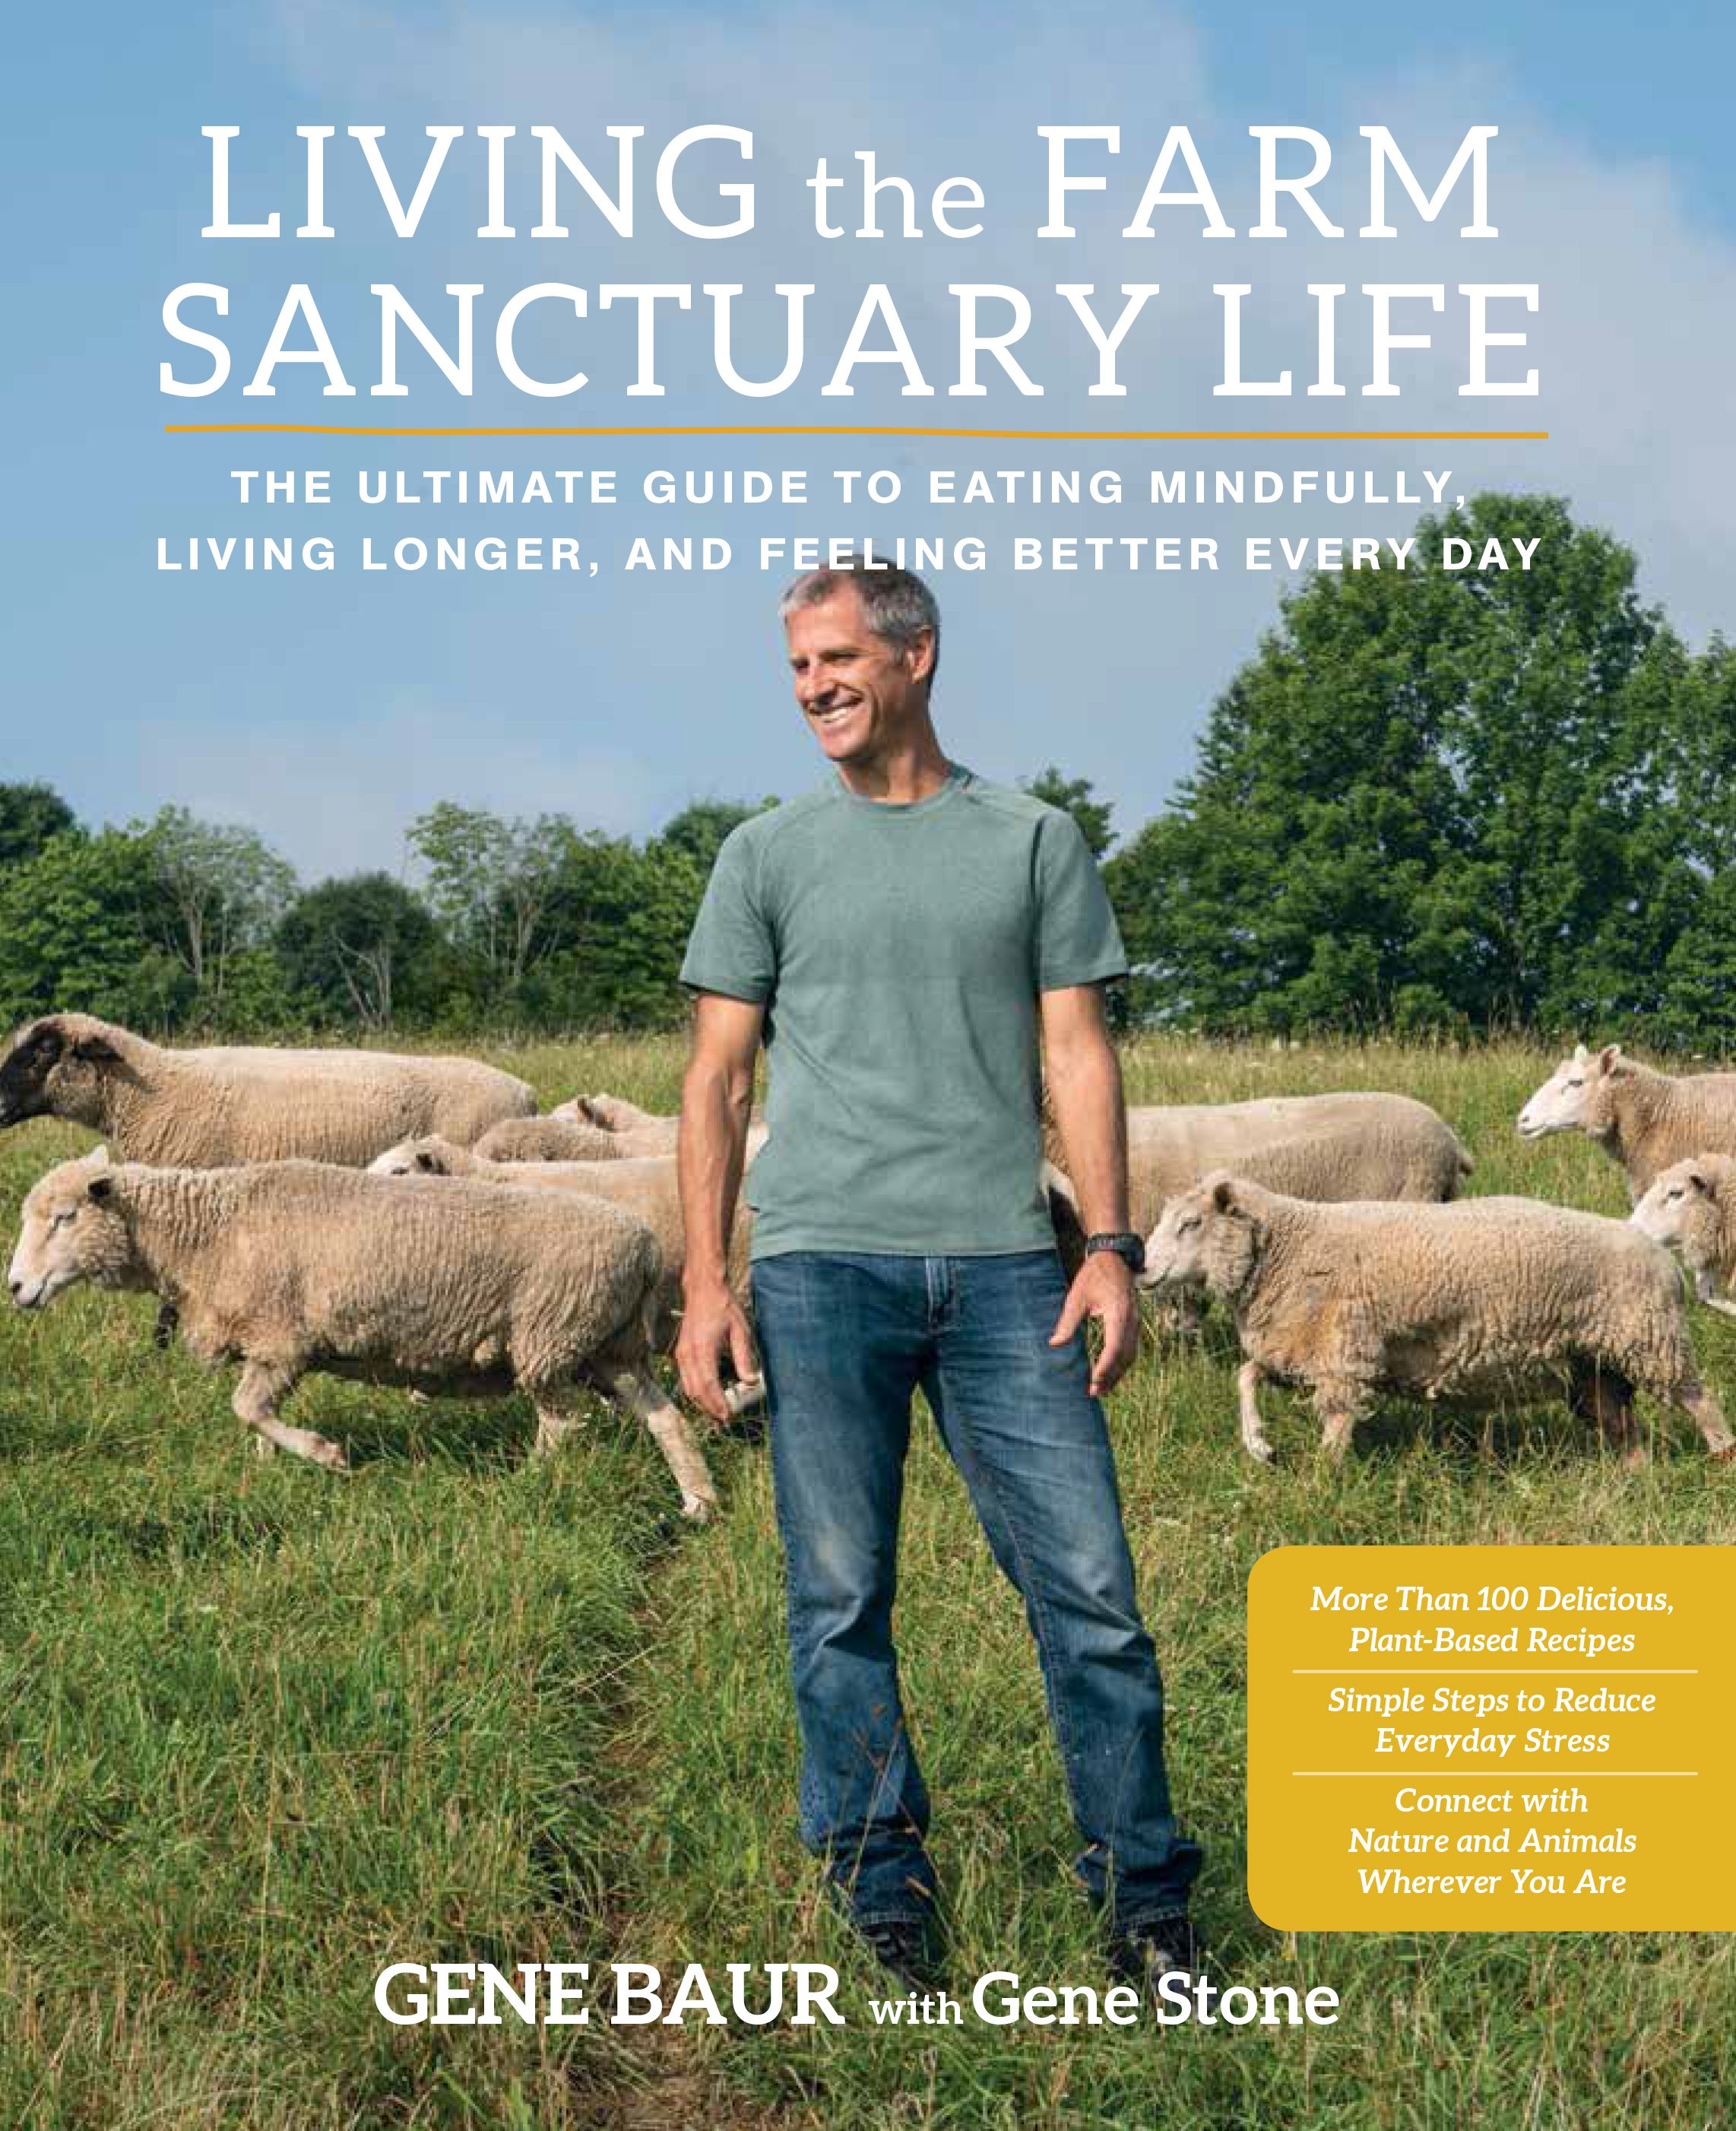 Gene Baur has a new book, Living the Farm Sanctuary Life: The Ultimate Guide to Eating Mindfully, Living Longer, and Feeling Better Every Day, that will be released on April 7, 2015, and is currently available for preorder online http://www.farmsanctuary.org/living/